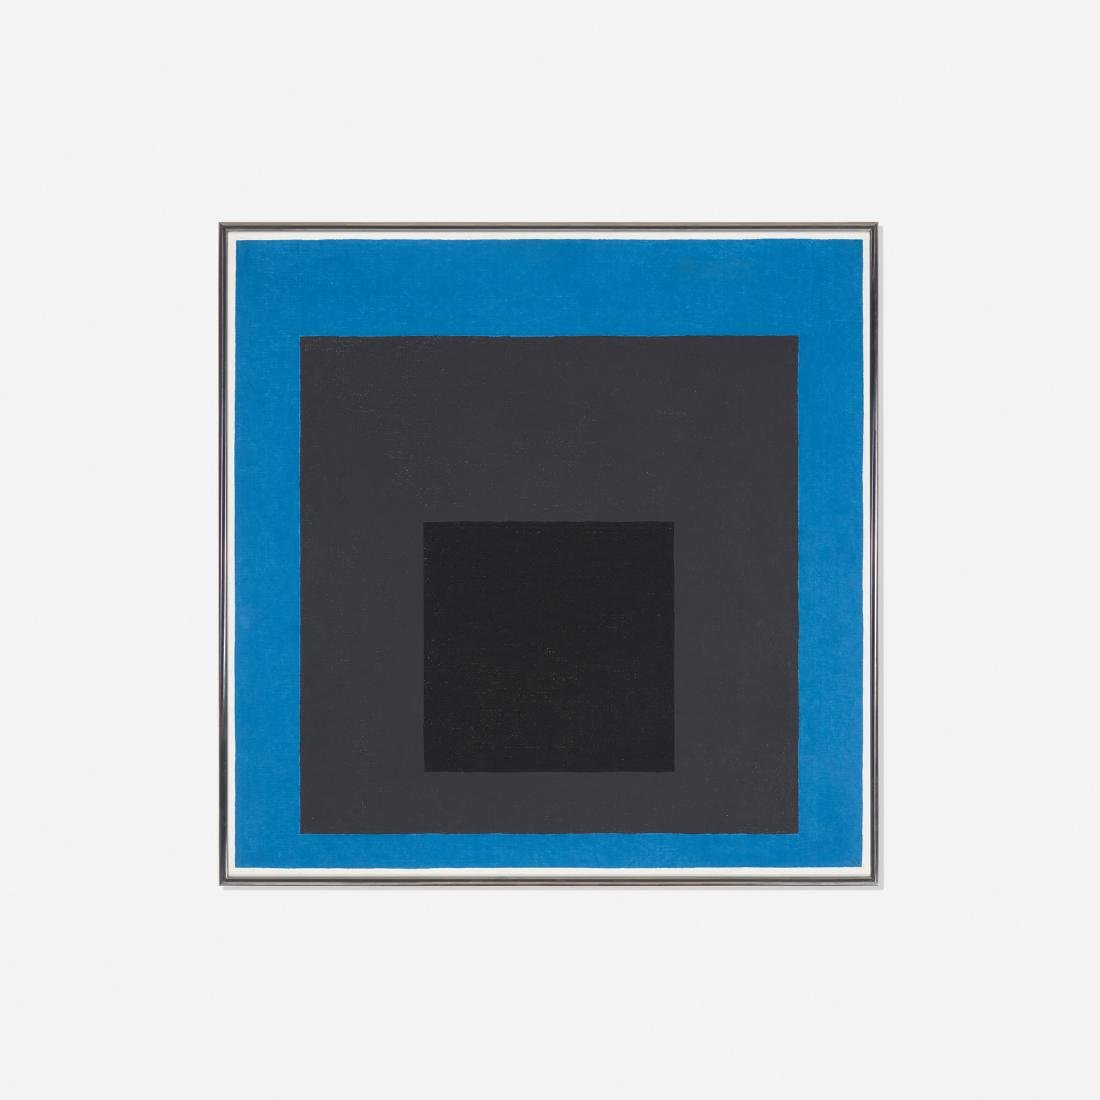 Josef Albers, Study for Homage to the Square